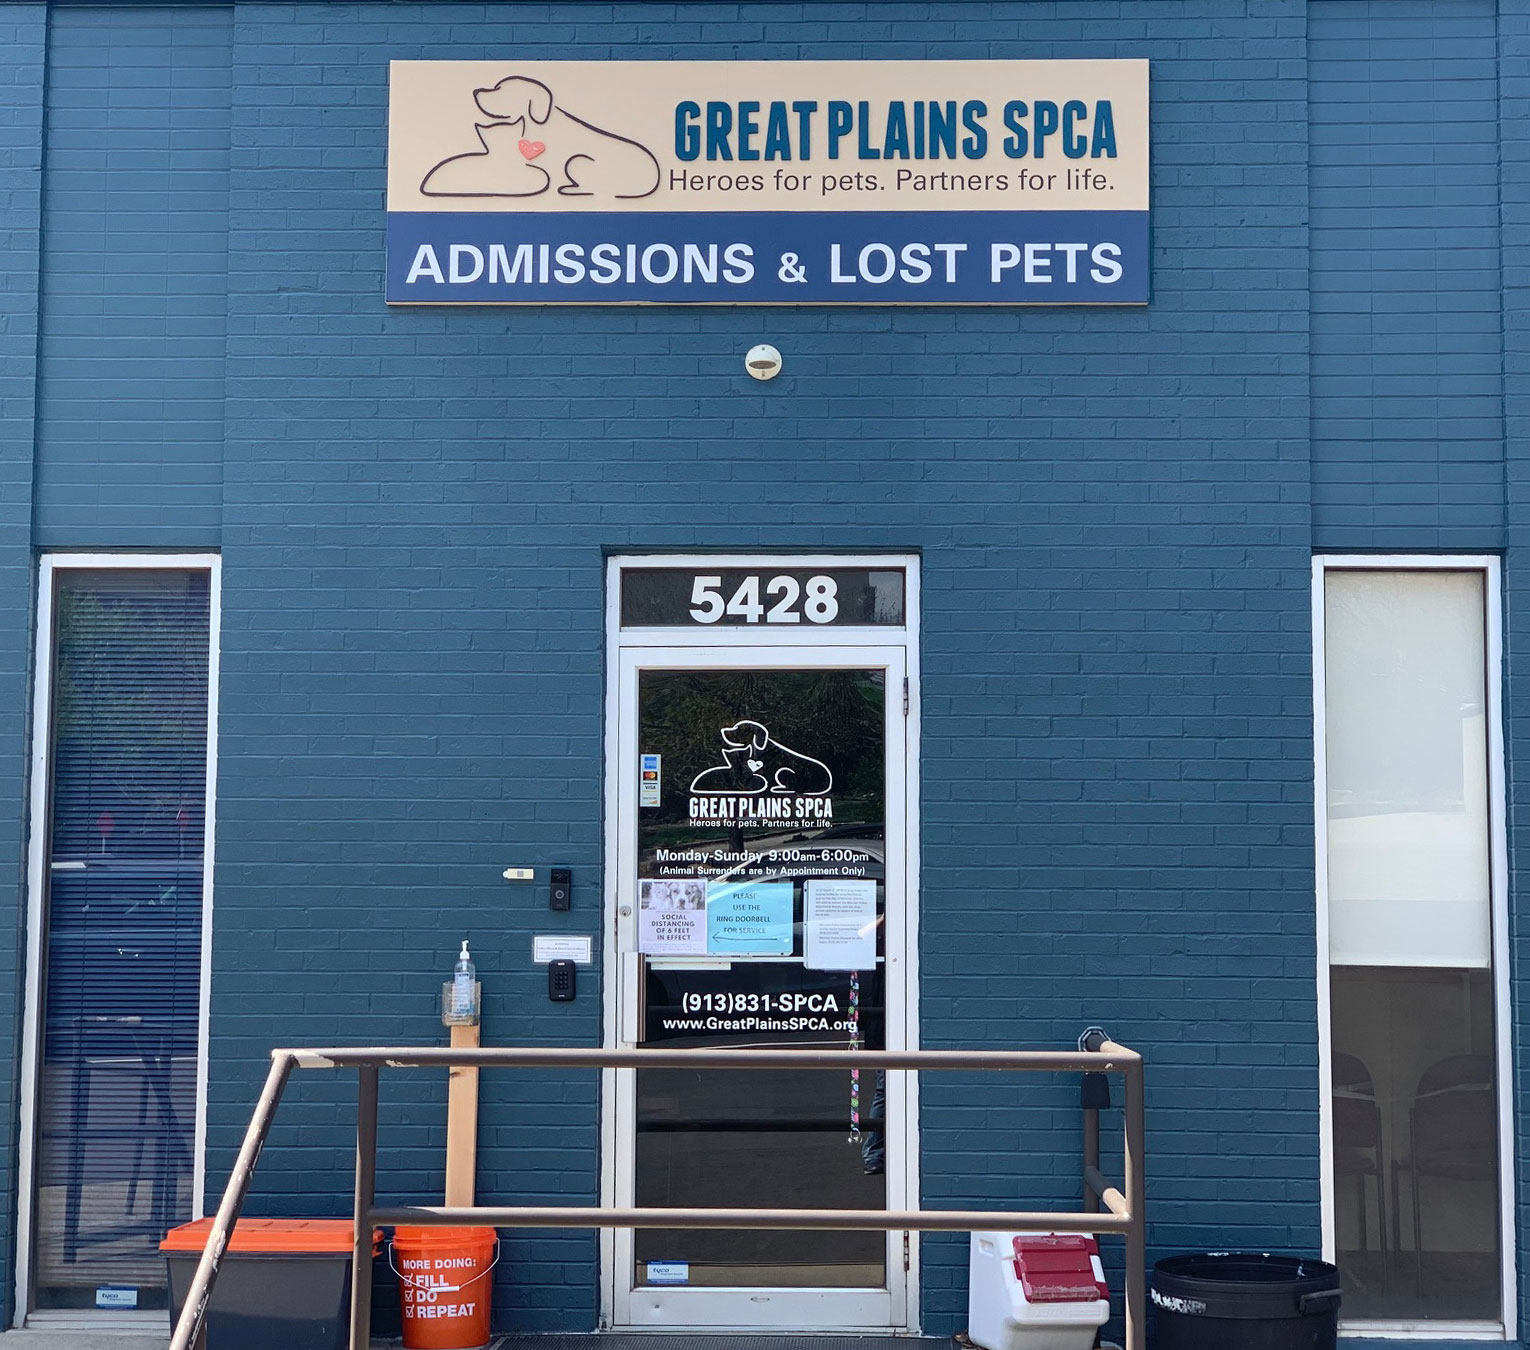 Great Plains SPCA Admissions Lost Pets